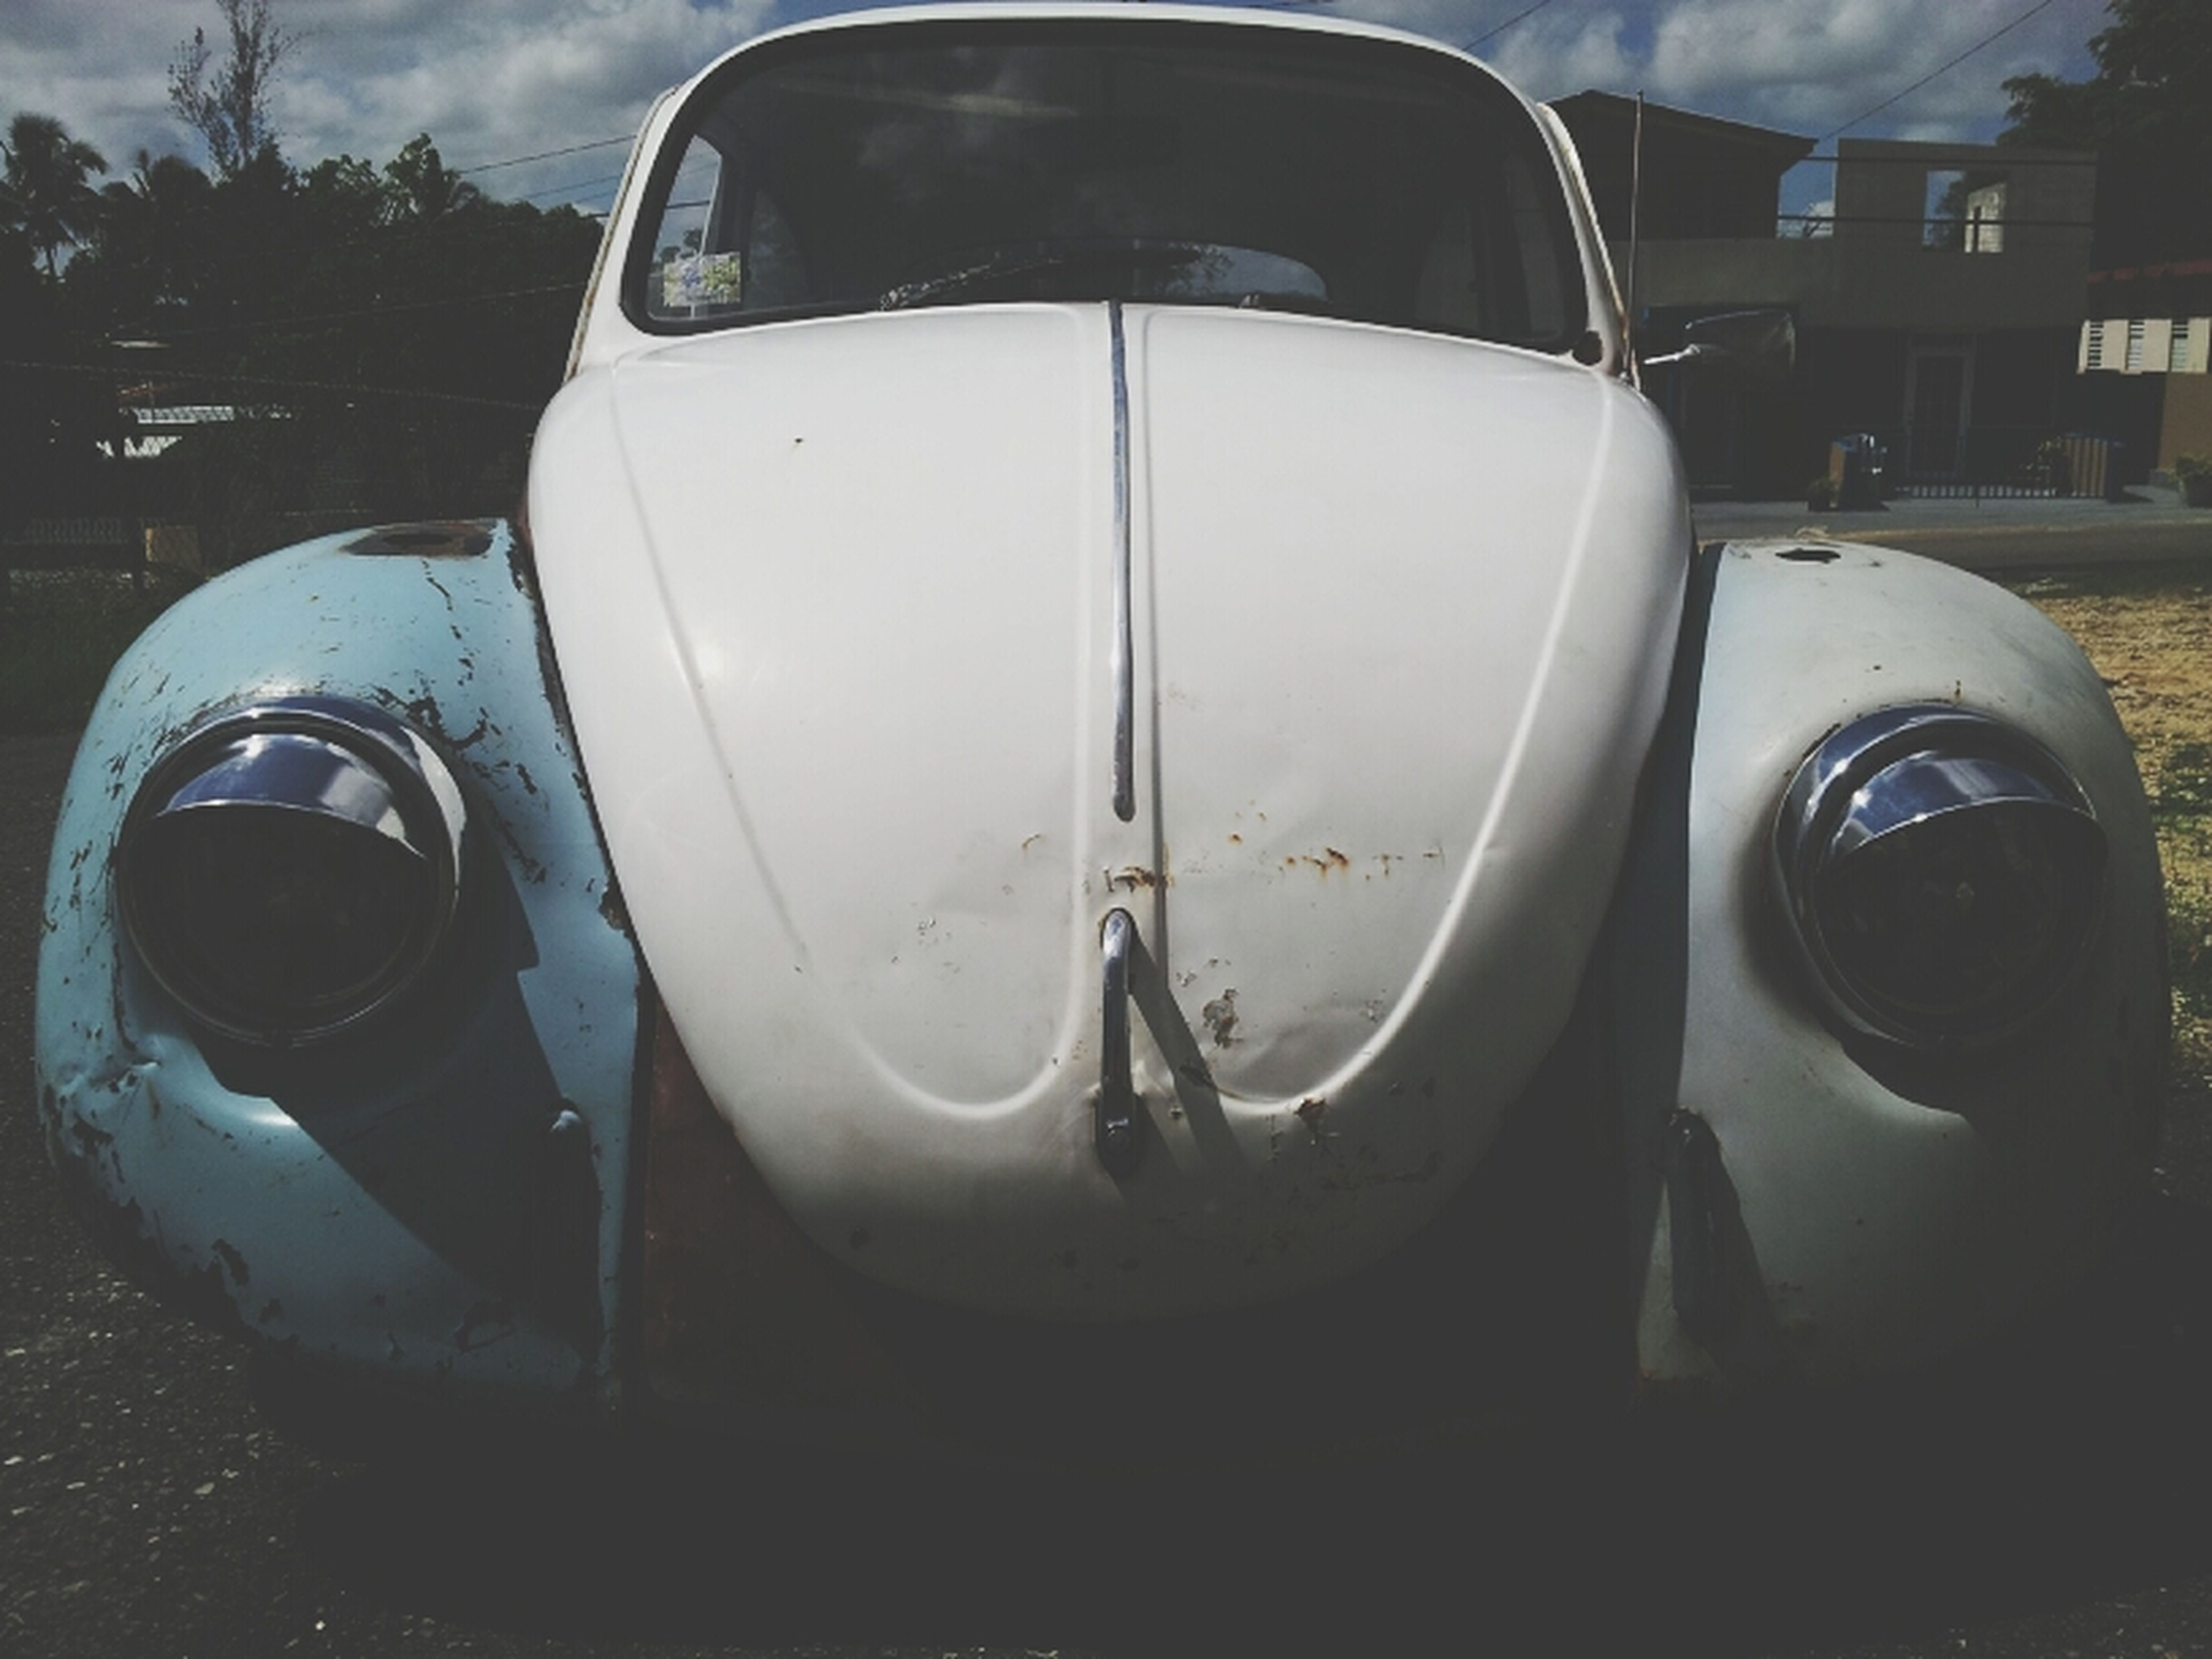 transportation, mode of transport, car, land vehicle, close-up, reflection, side-view mirror, vehicle part, glass - material, no people, stationary, part of, headlight, day, travel, transparent, outdoors, air vehicle, vehicle interior, sky